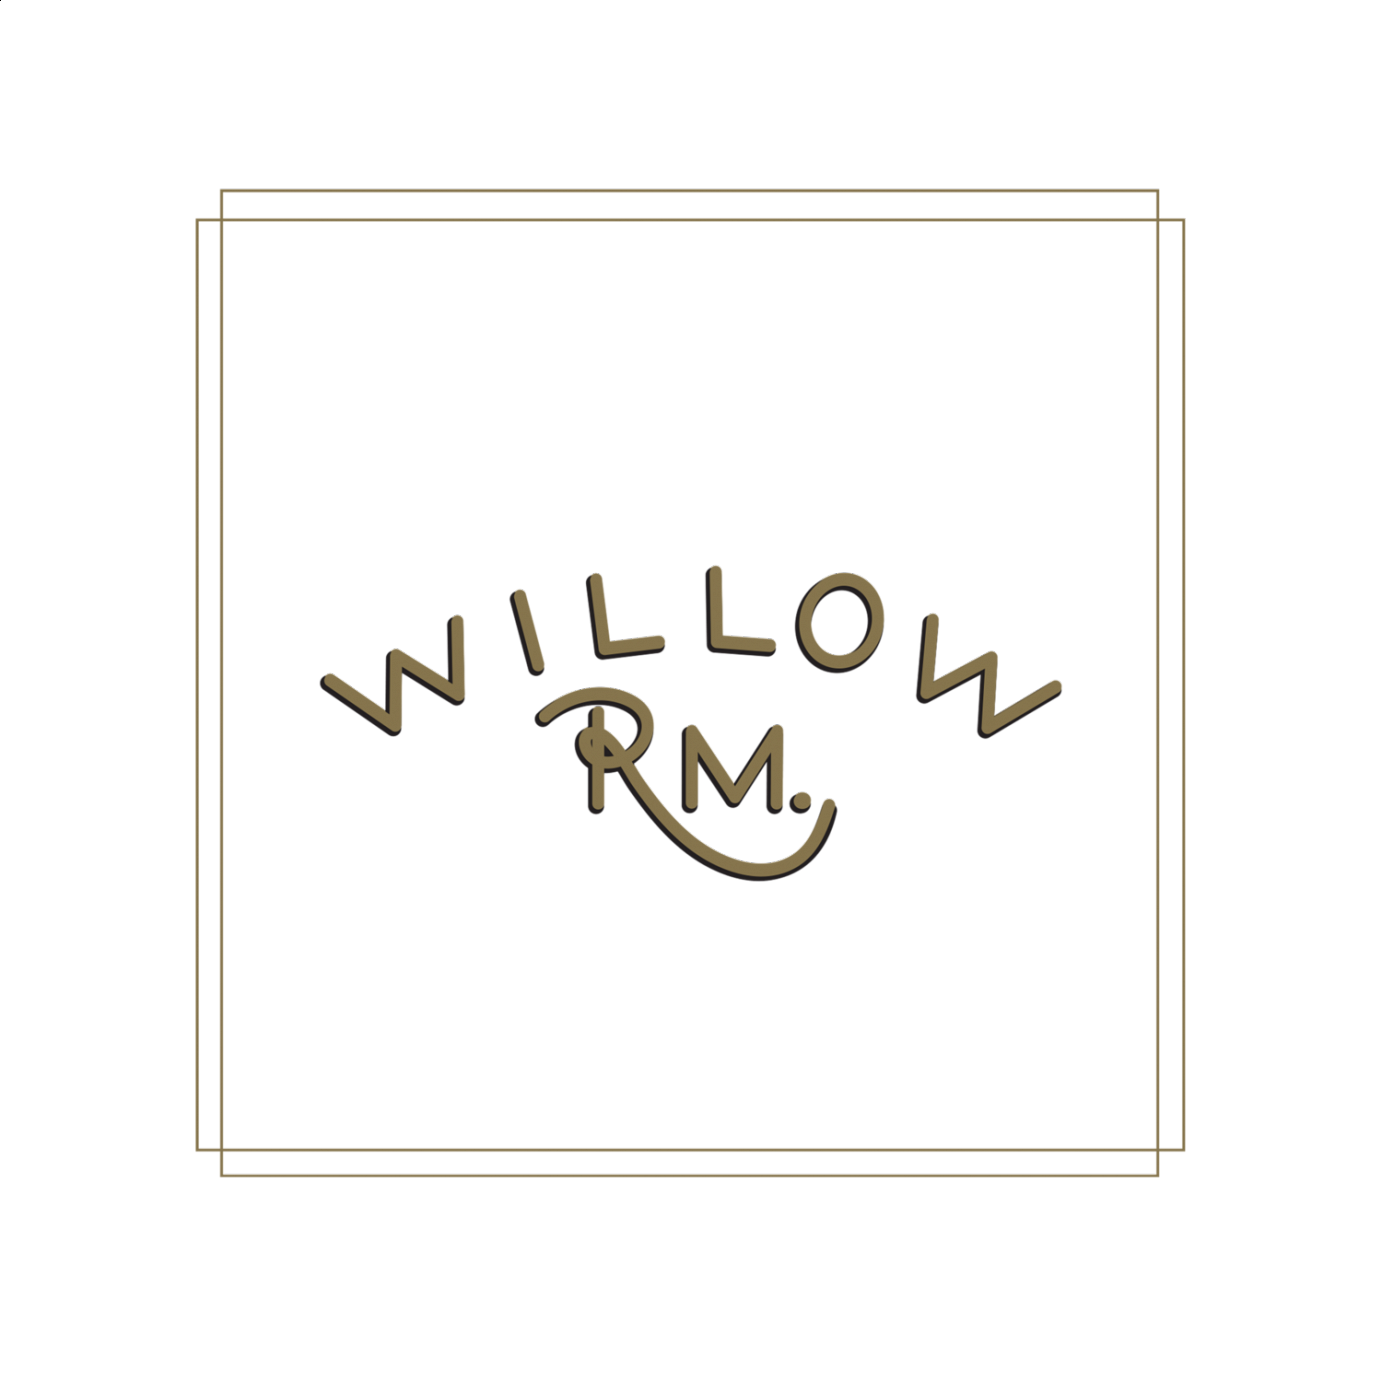 Willow Room logo top